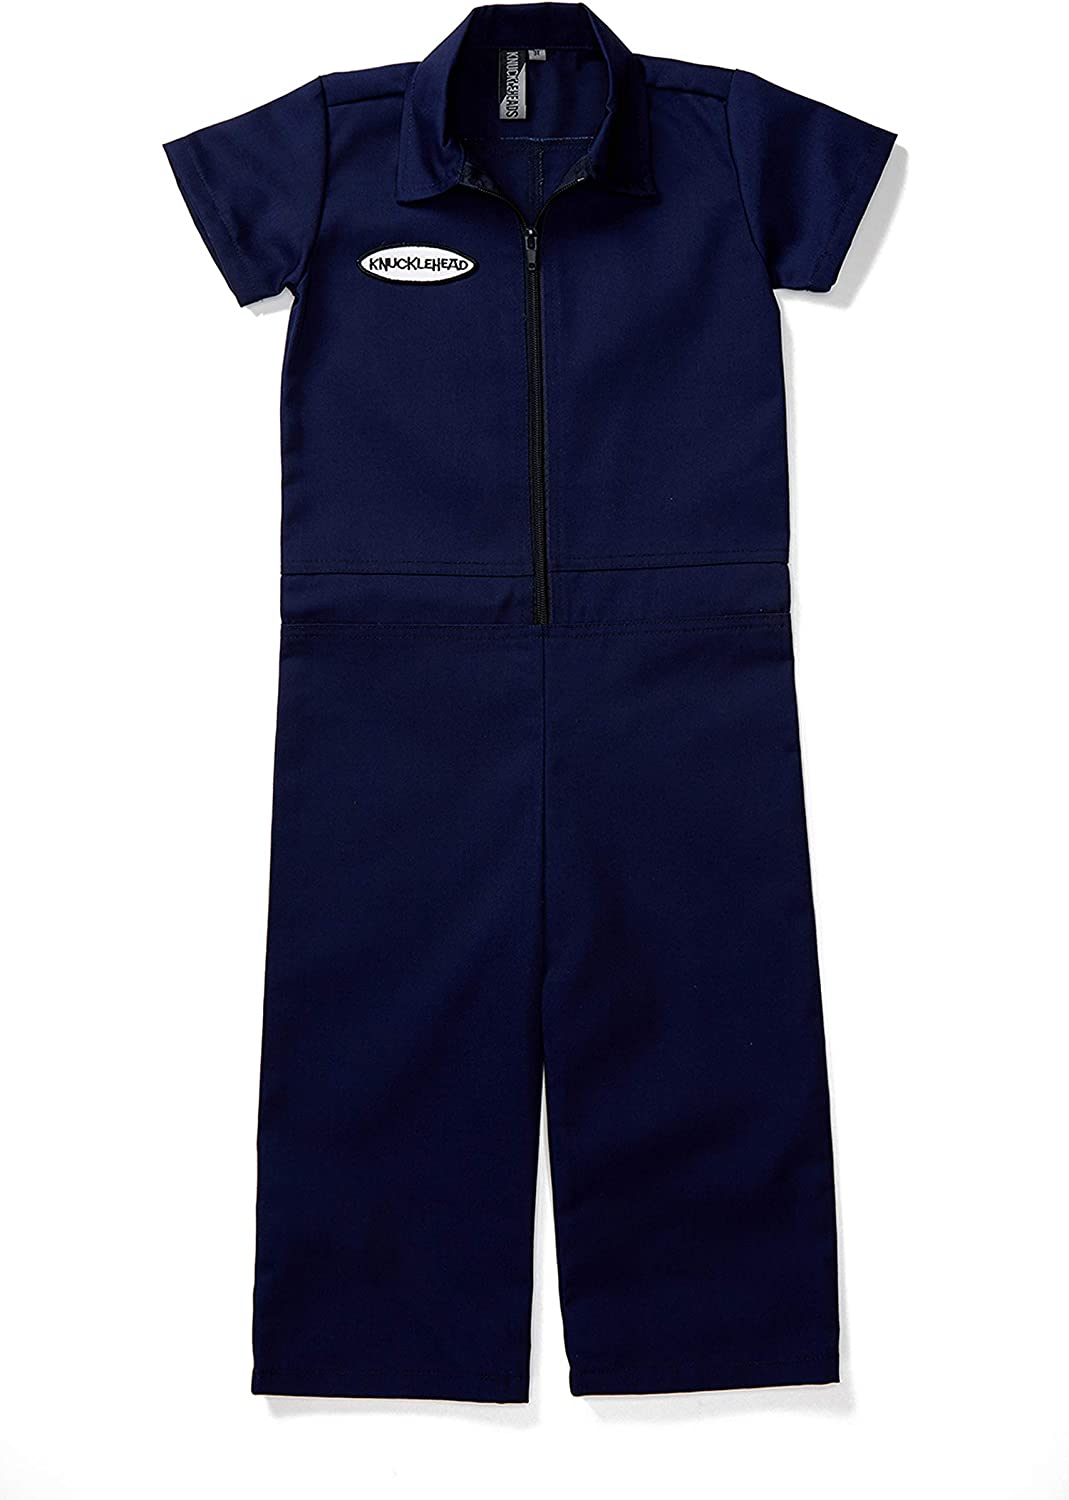 Knuckleheads Kids Coverall for Boys Jumpsuit Spasm price Mechanic Ranking integrated 1st place Overalls